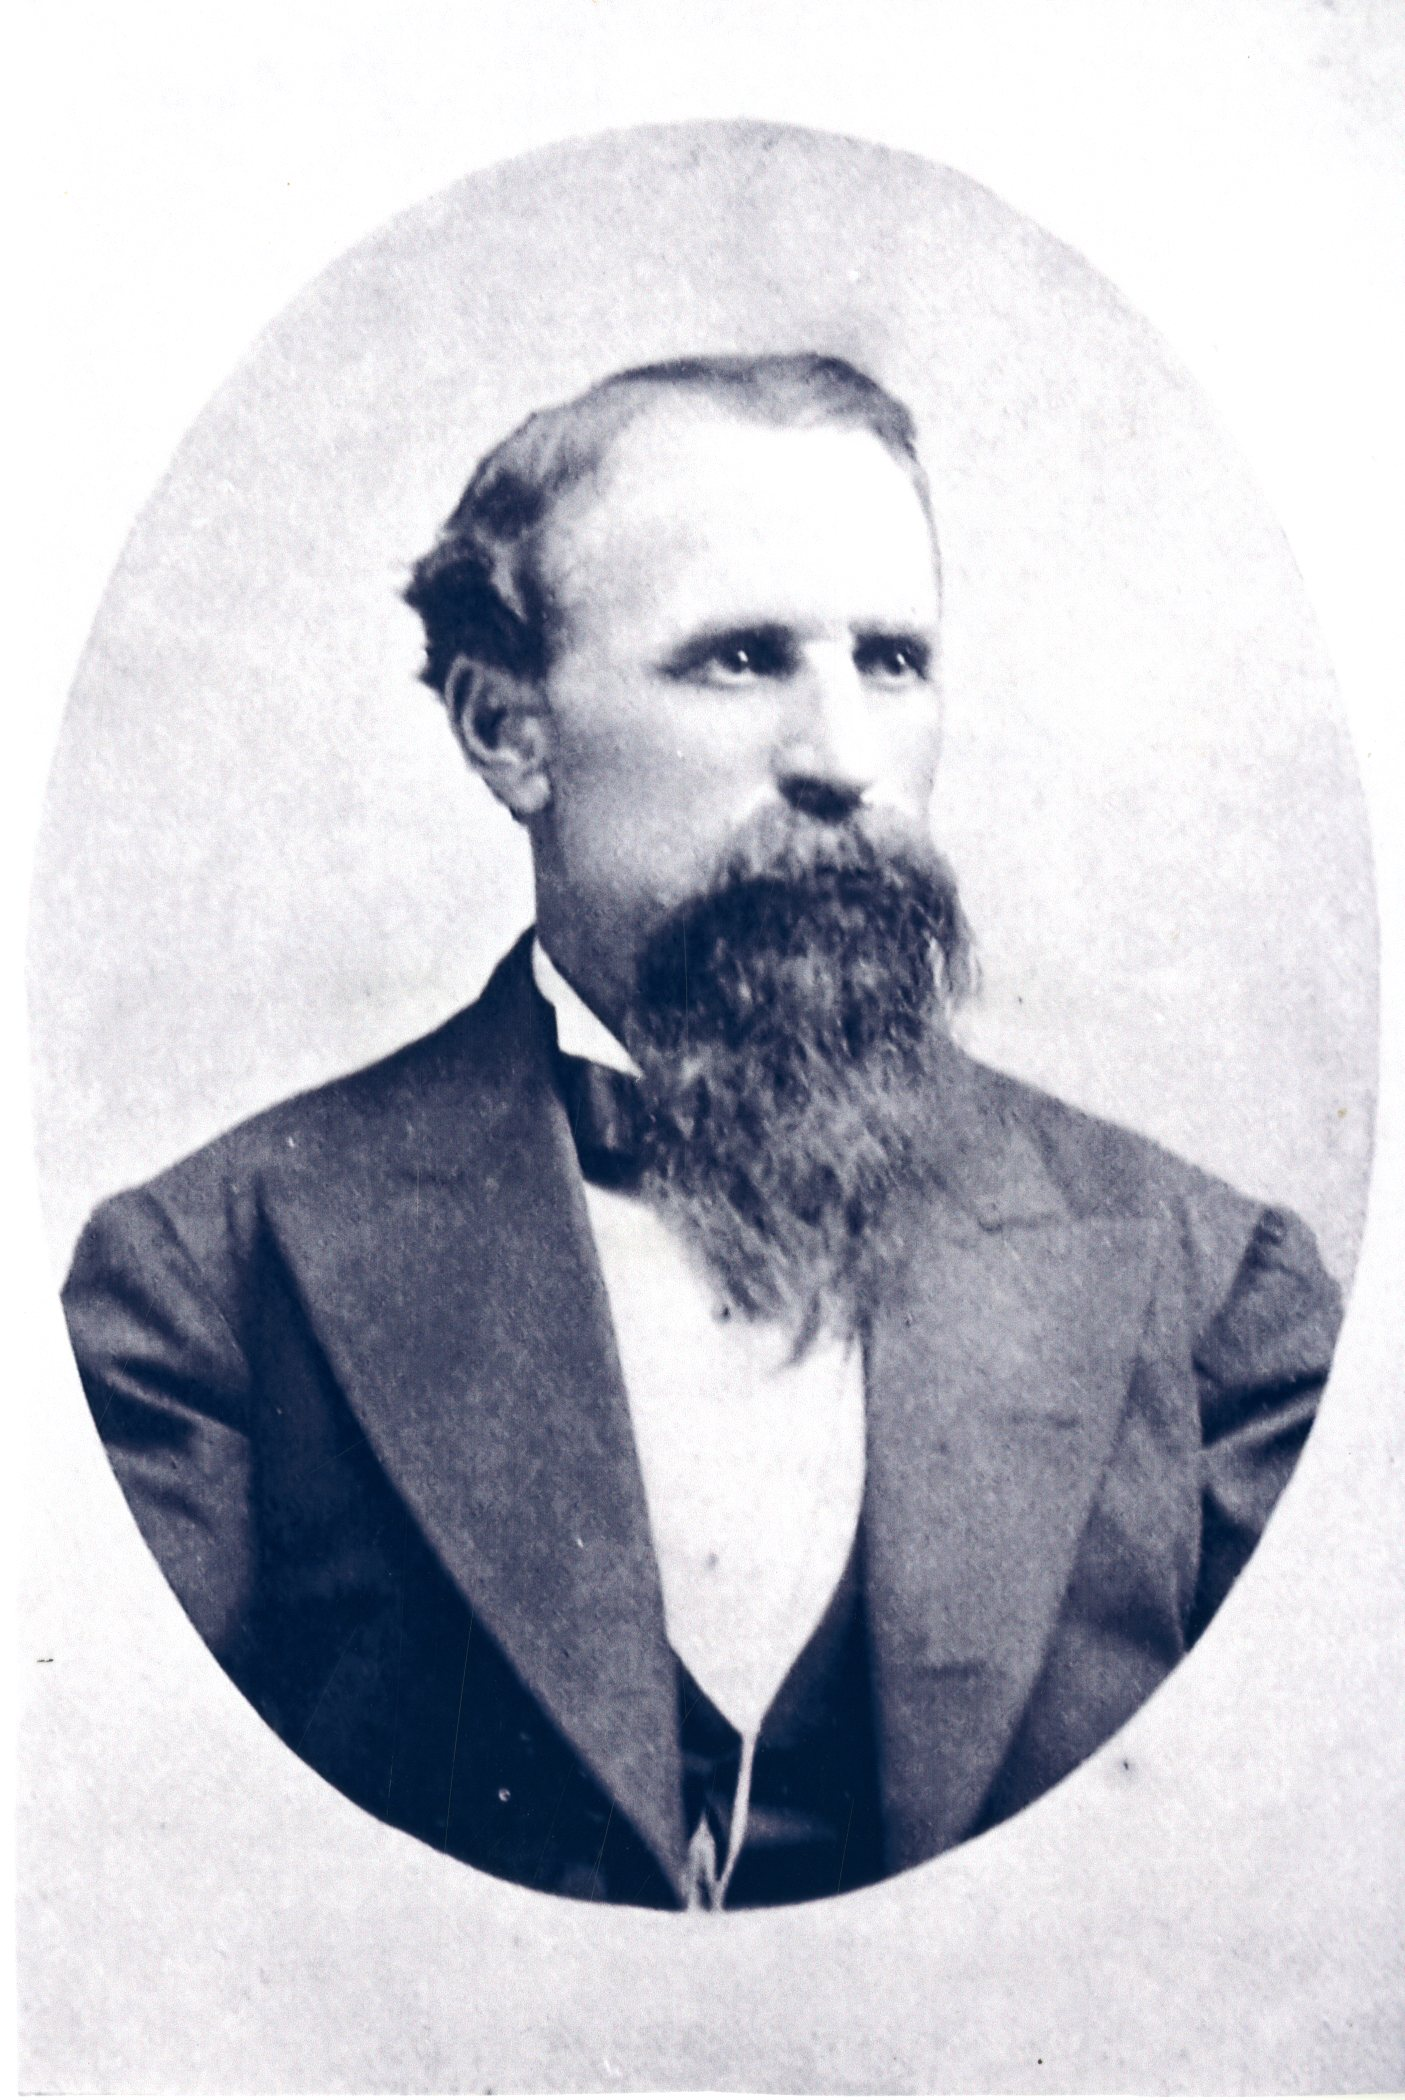 Anson P.K. Safford, undated. Anson P.K. Safford was the Territorial Governor of Arizona from 1869 to 1877, and moved to Tarpon Springs in 1882, where he helped found the community.